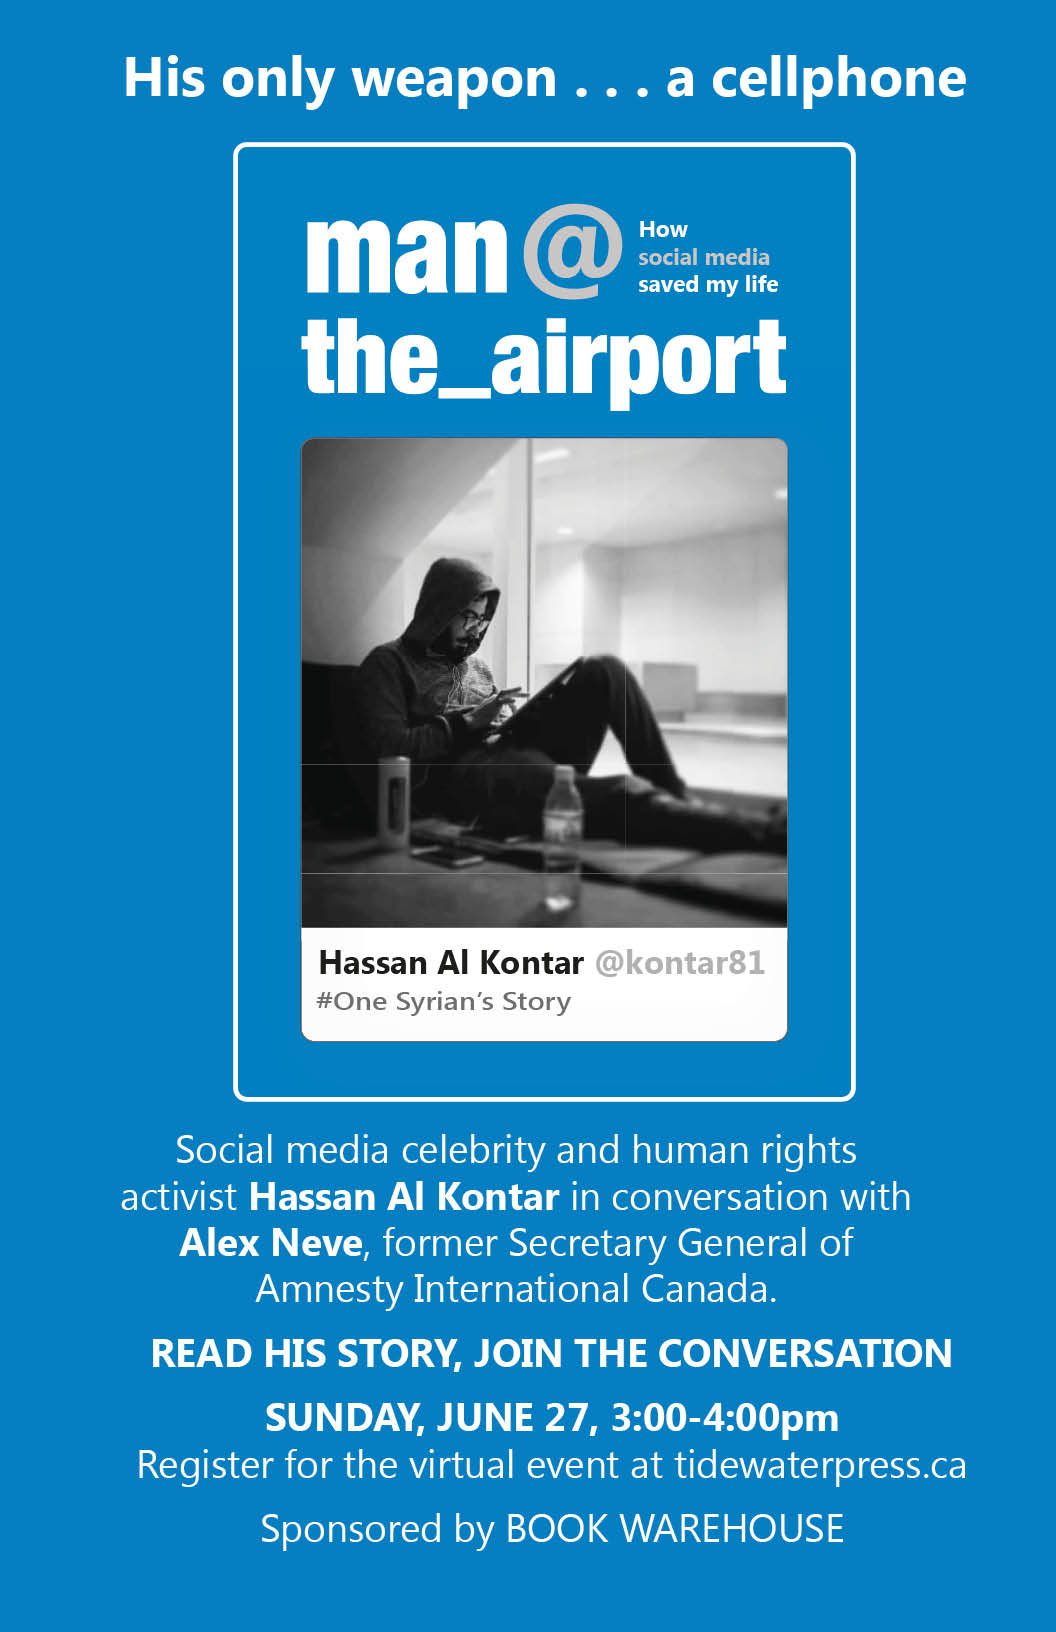 Book Warehouse event with Hassan Al Kontar and Alex Neve